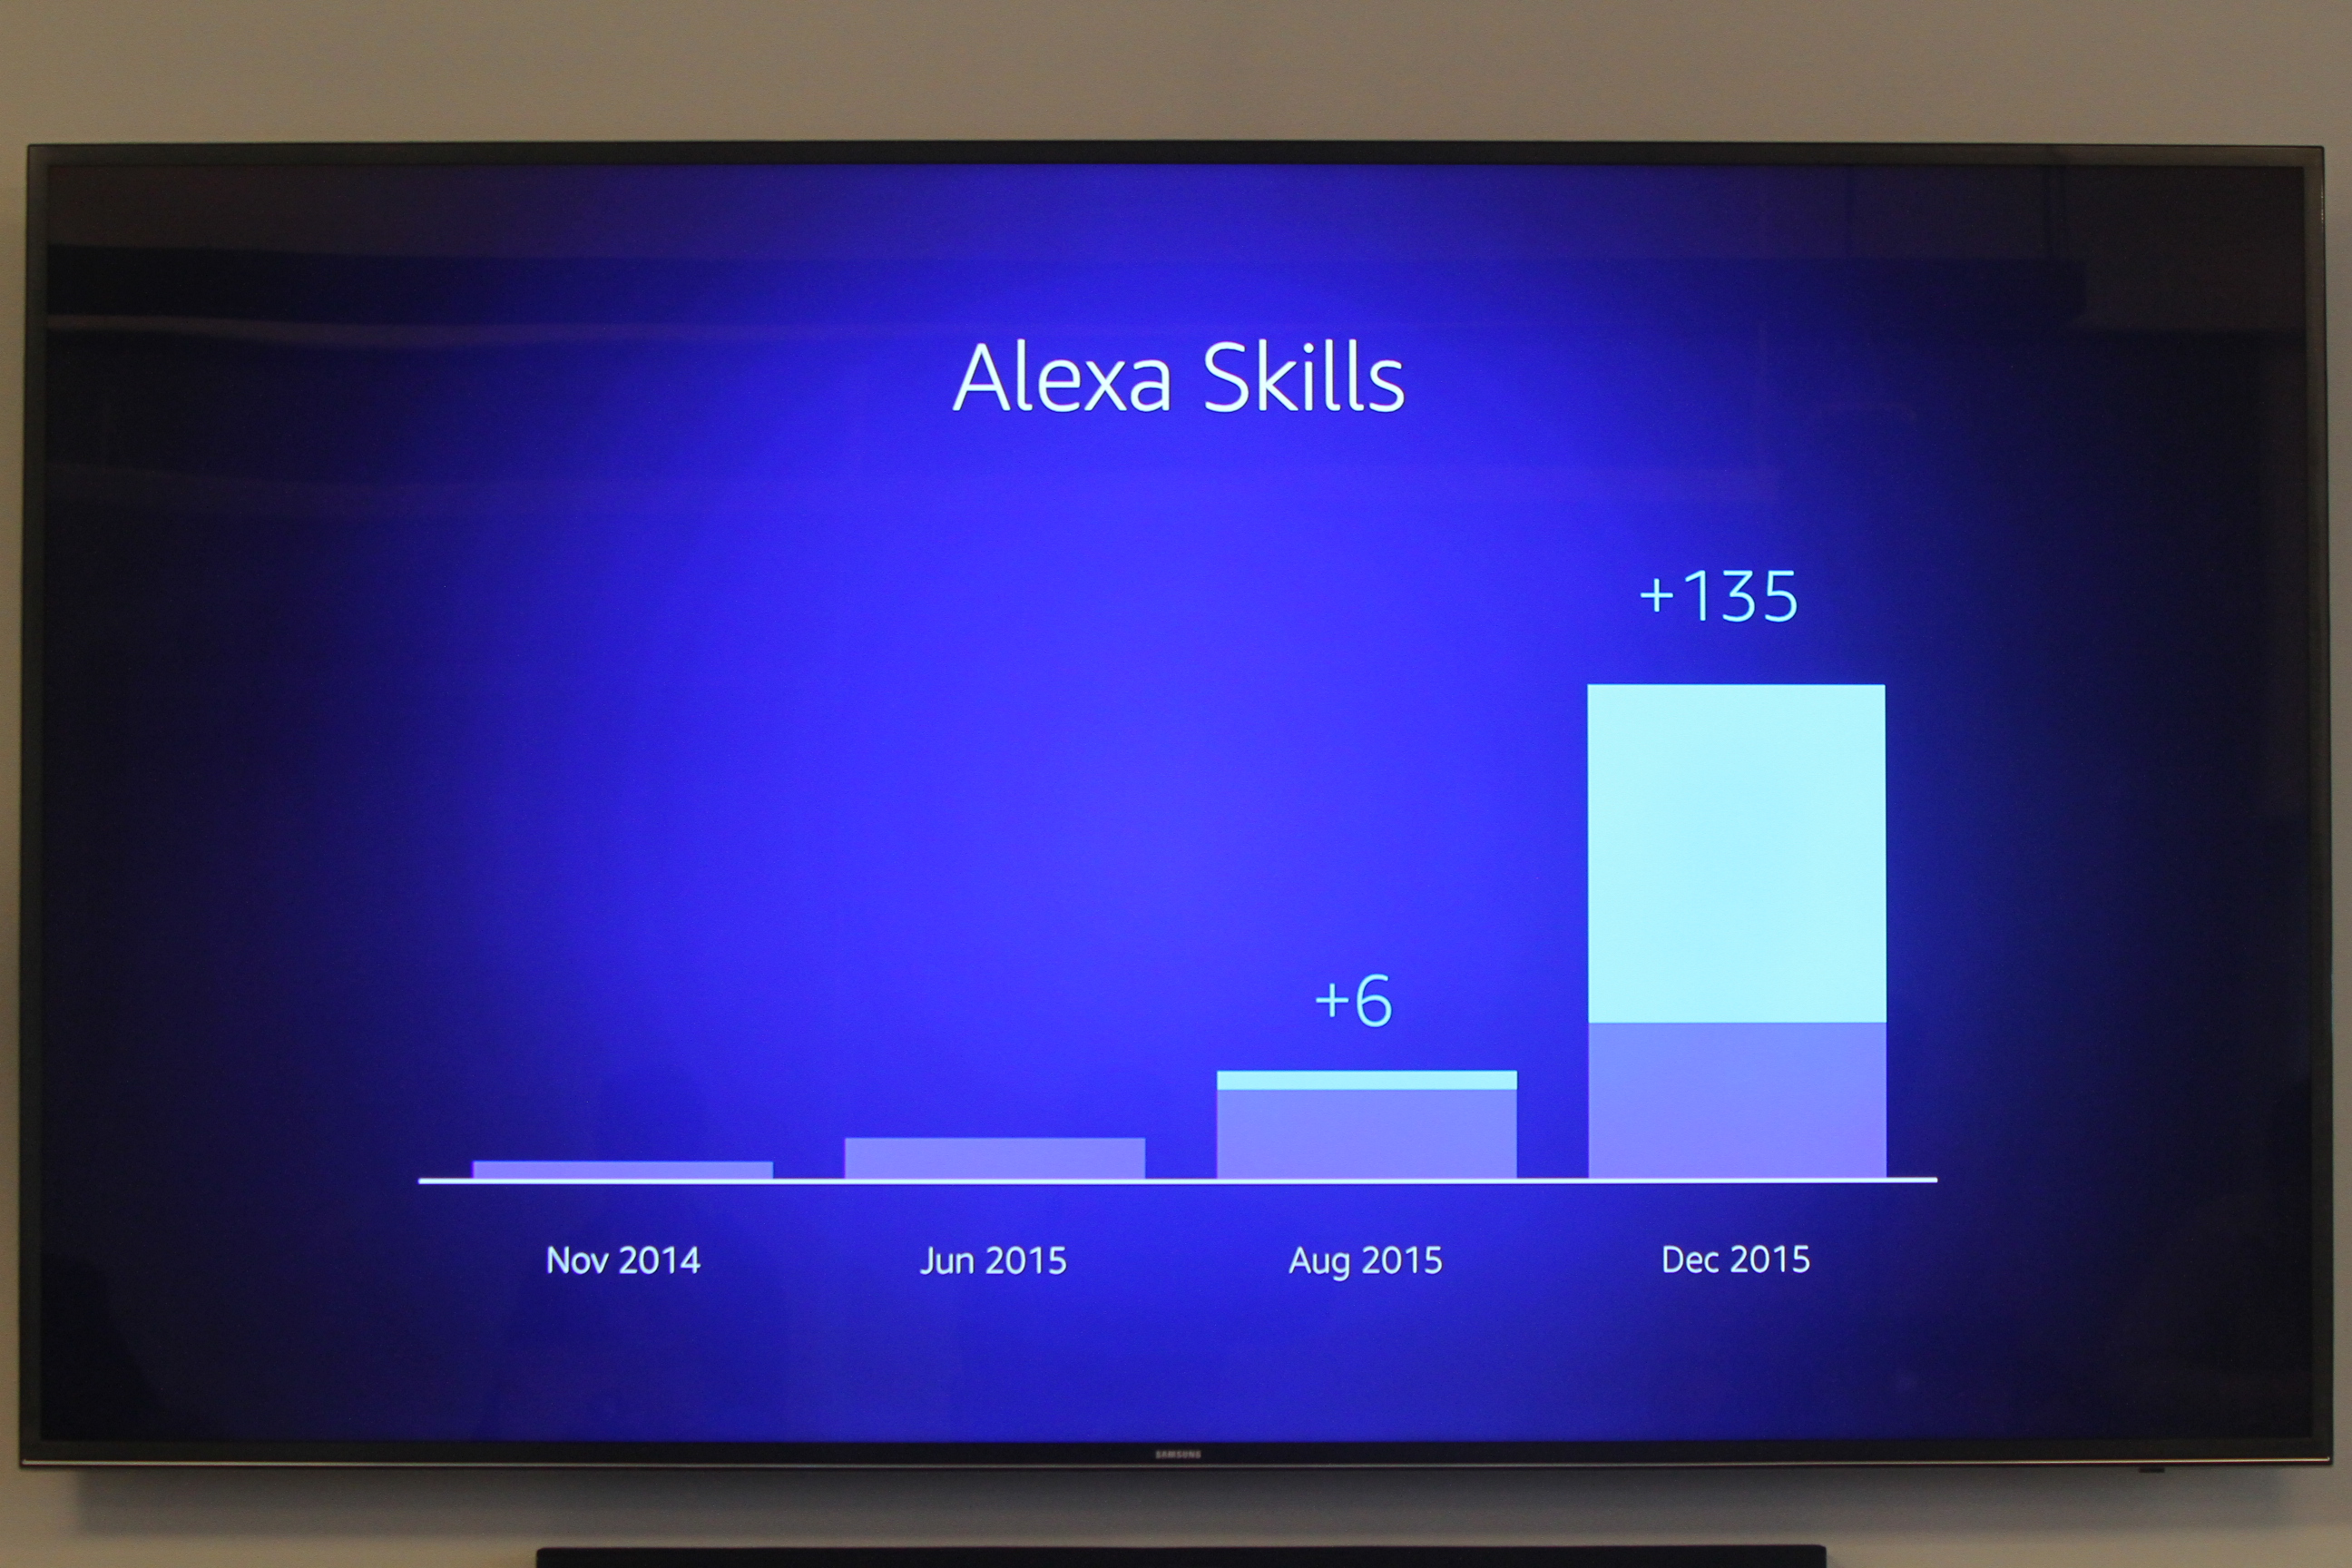 A chart detailing the growing number of skills being added to Alexa since launch to March 2016.